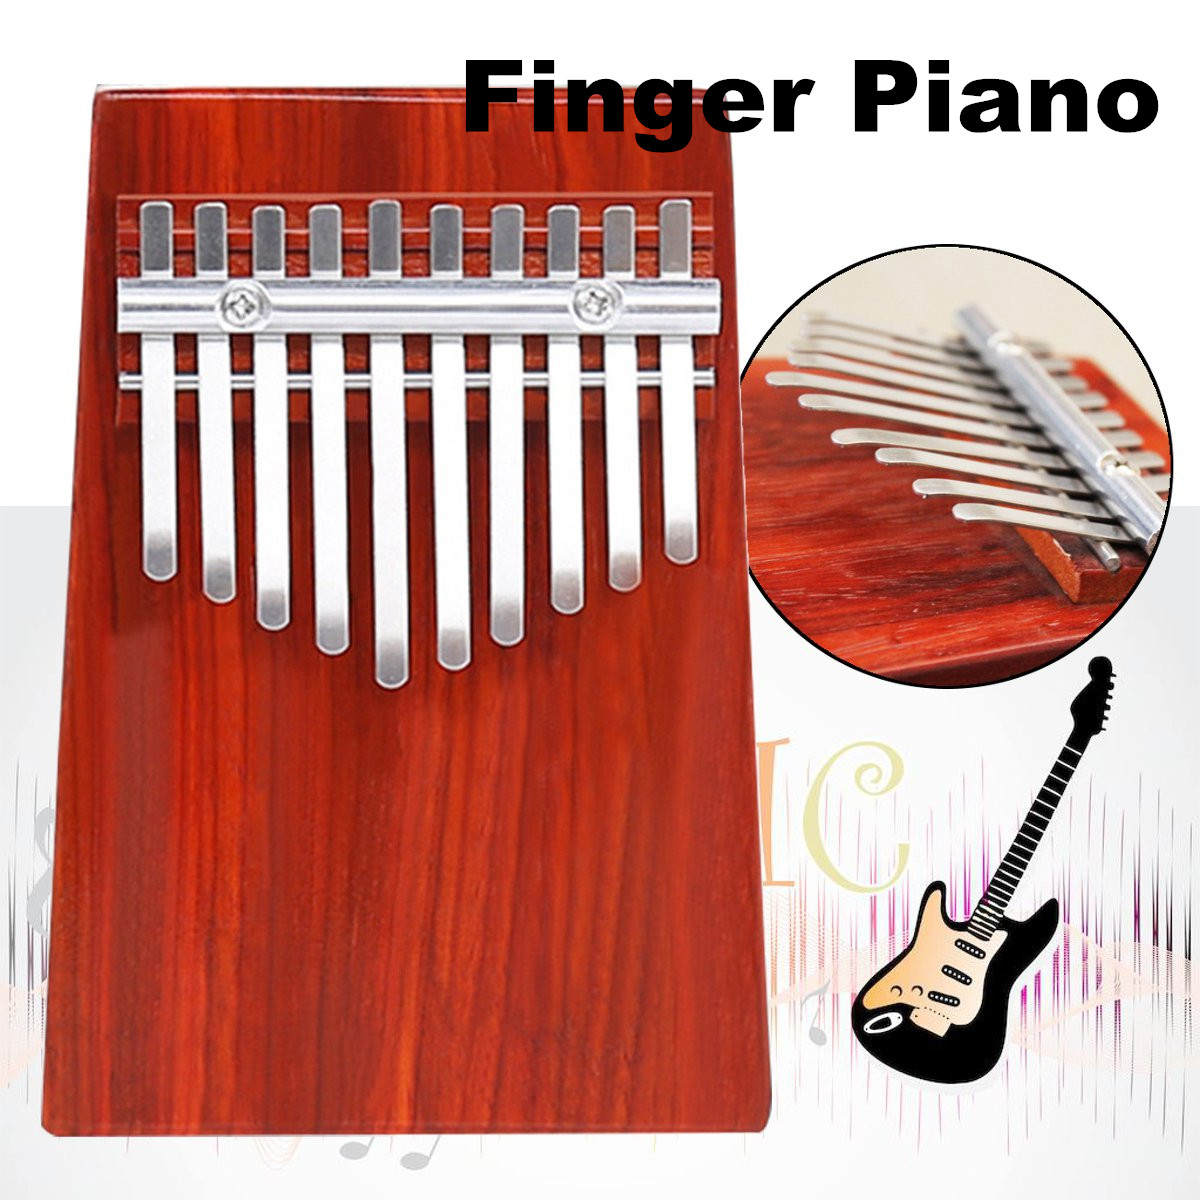 10 Key Kalimba Thumb Piano Finger Wood Percussion African Musical Instrument Toy